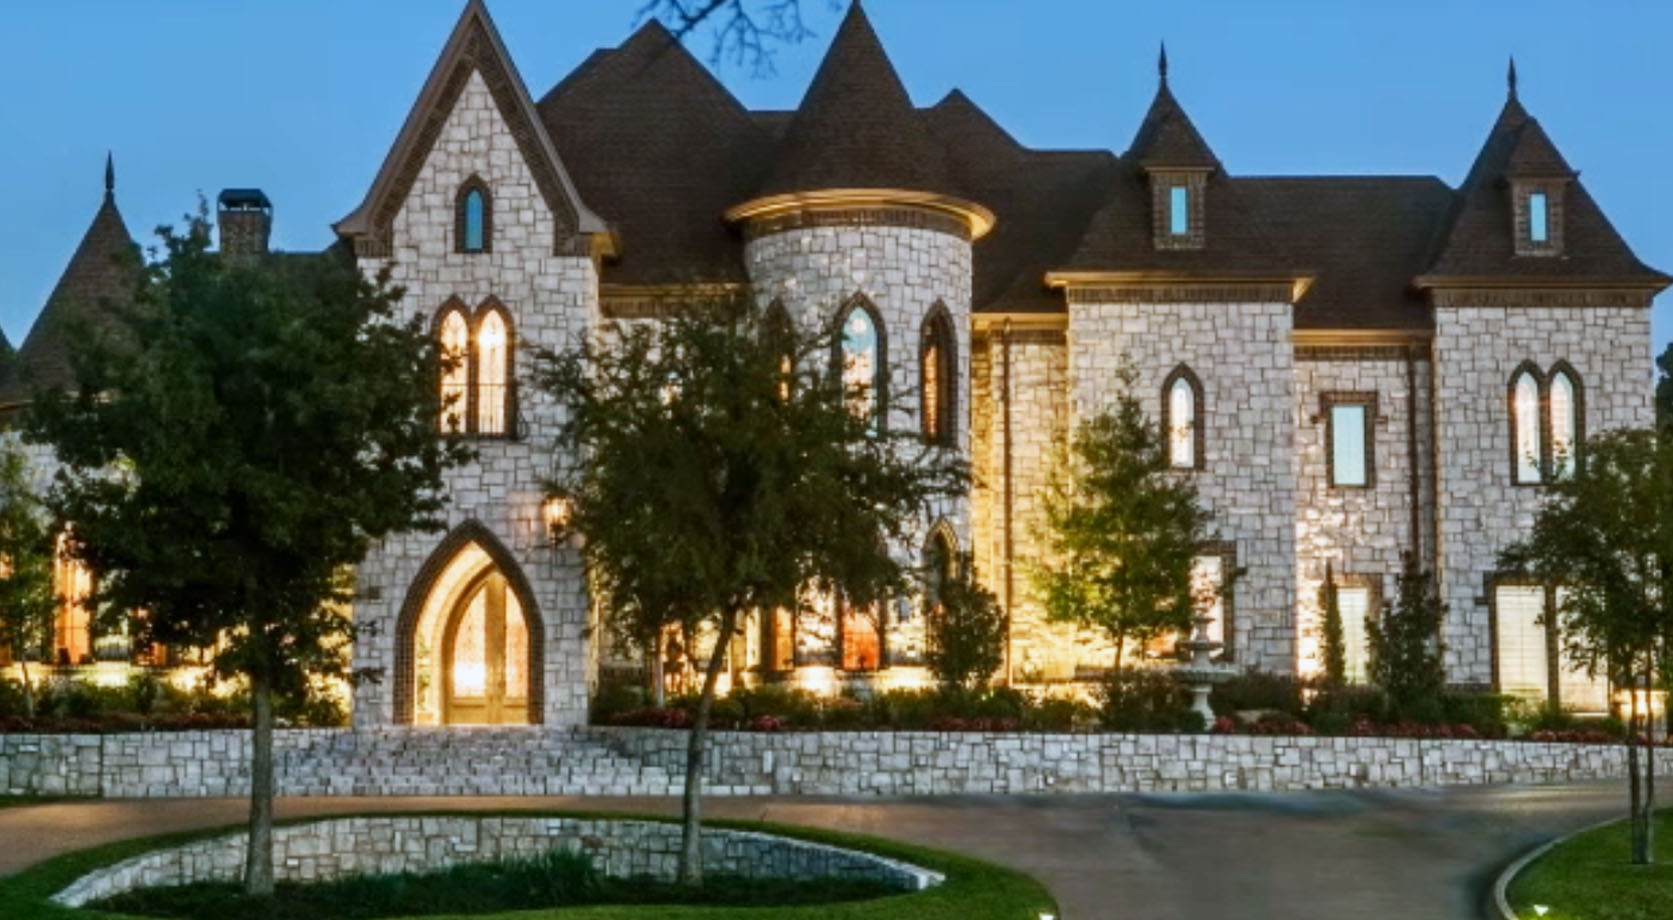 513 coyote rd southlake tx 76092 j lambert custom homes Home builder contractor